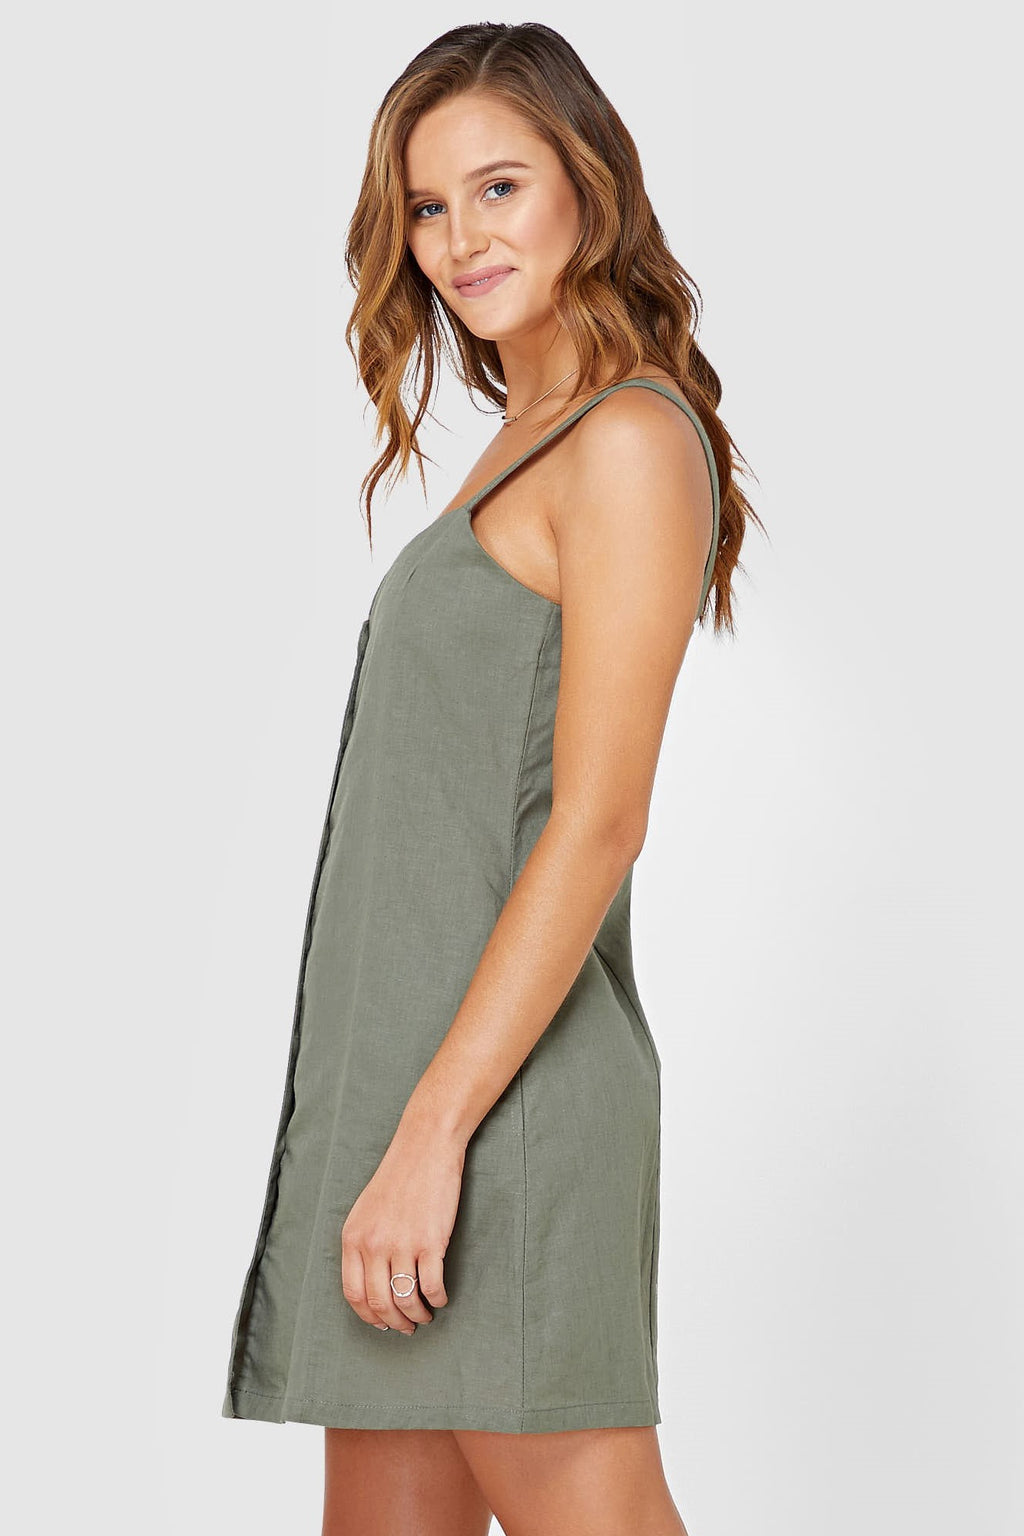 Frieda Dress // Khaki